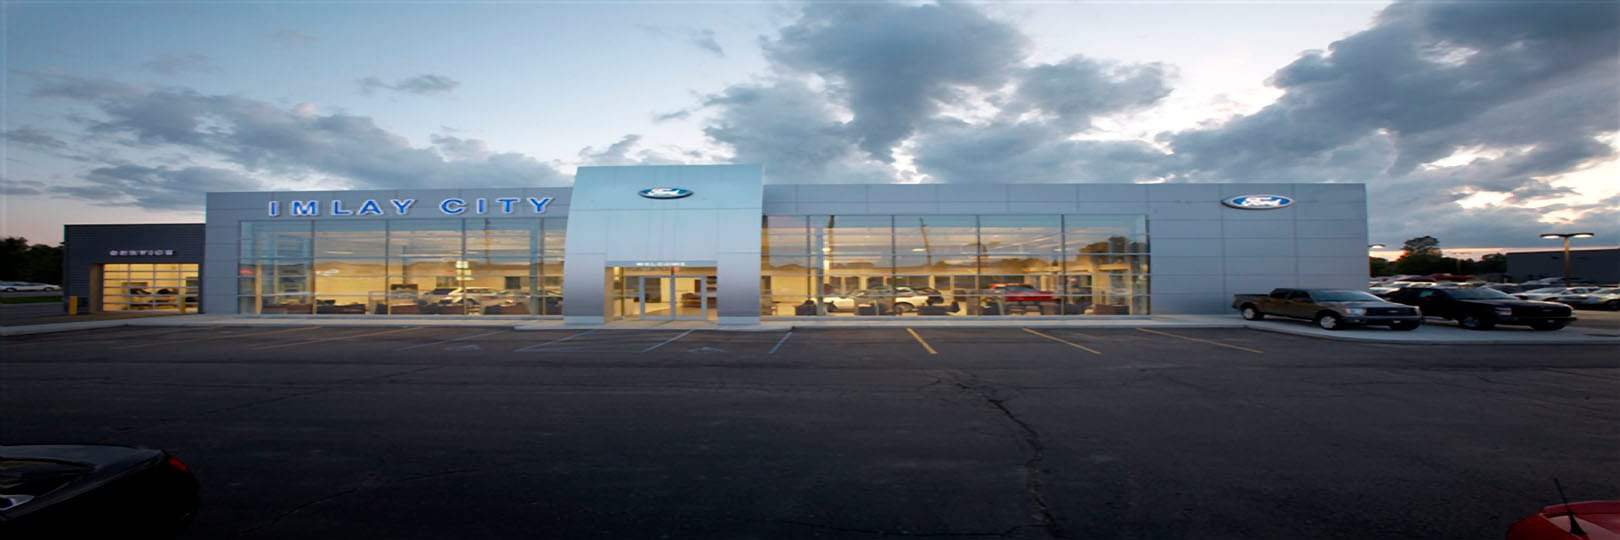 Imlay City Ford Exterior